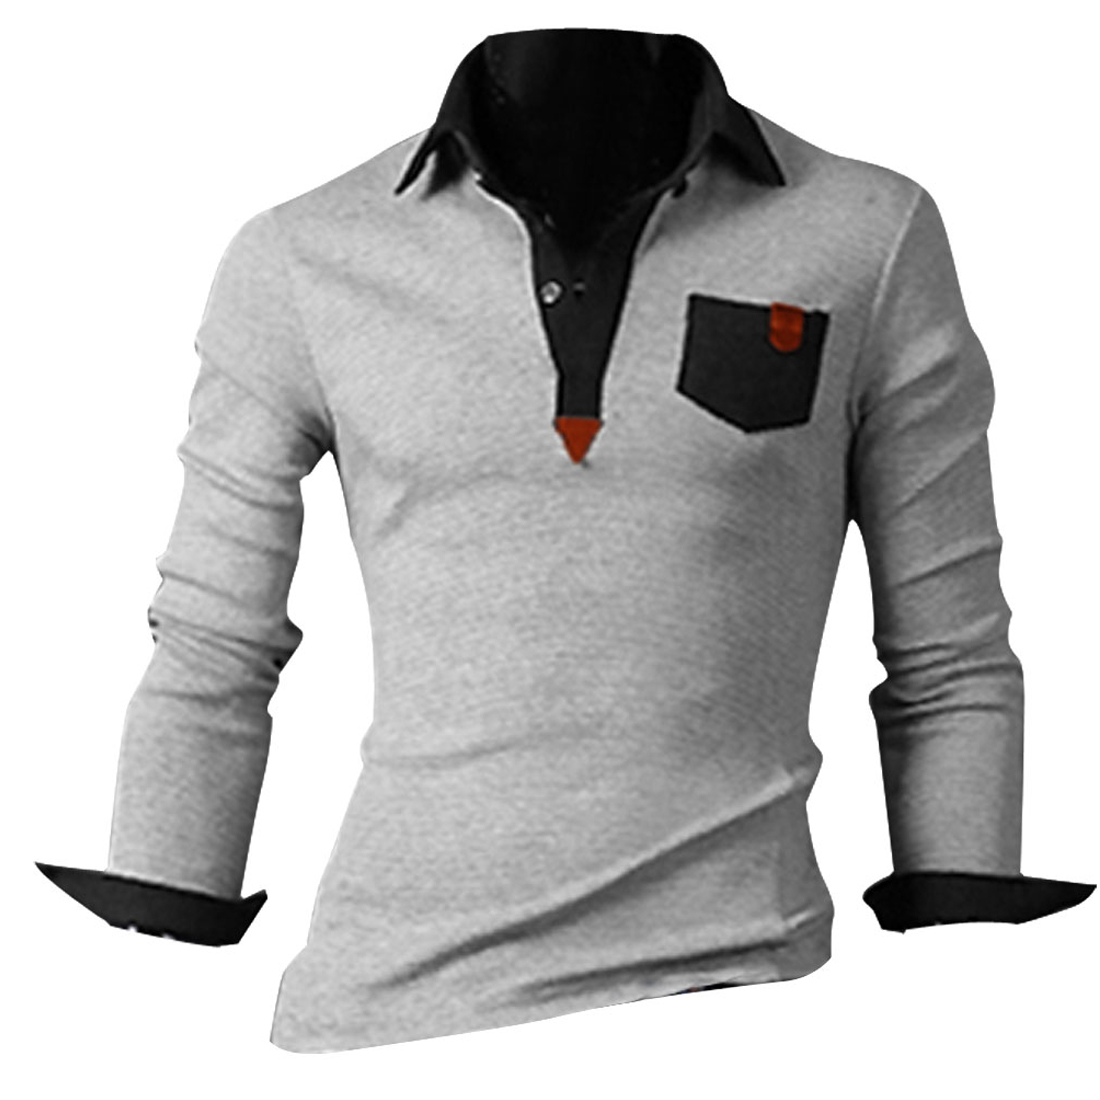 Man Slipover Light Gray Long Sleeve Chest Pockets Design Polo Shirt M